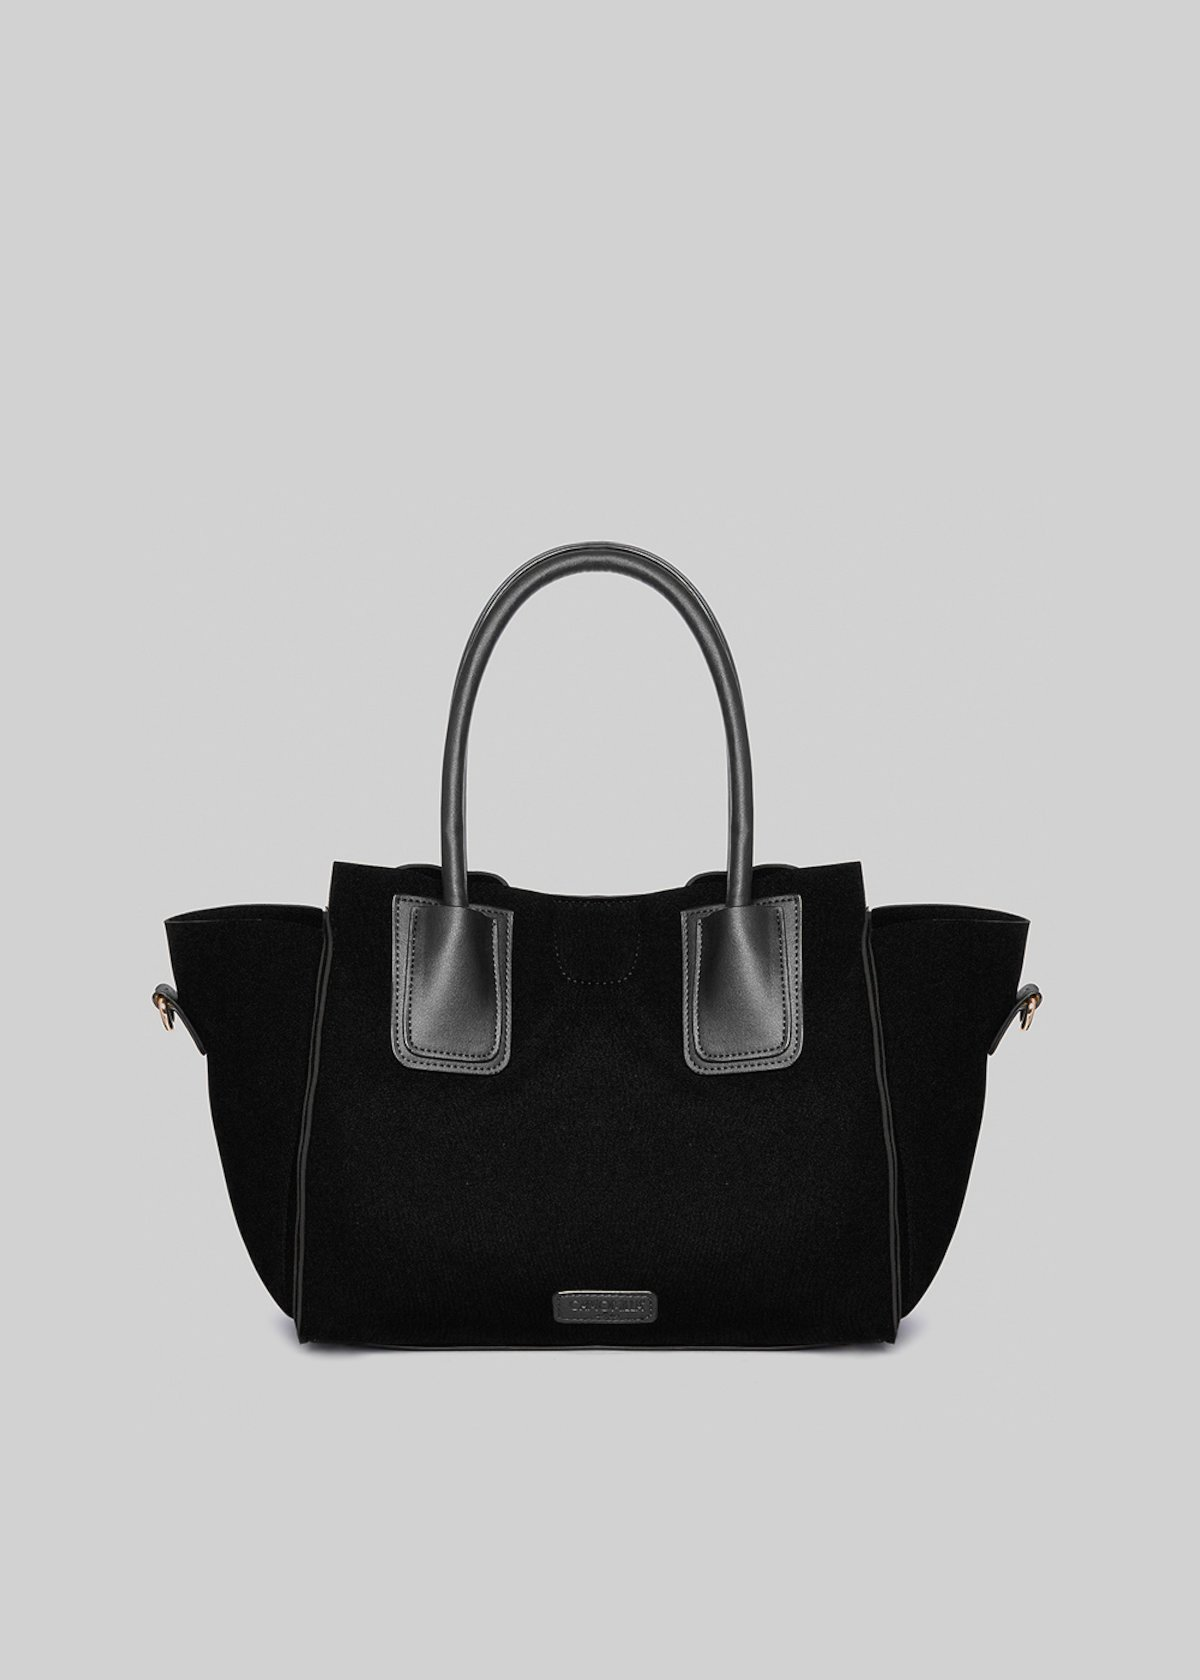 Borsa Blakie in neoprene ed ecopelle con tracolla - Black